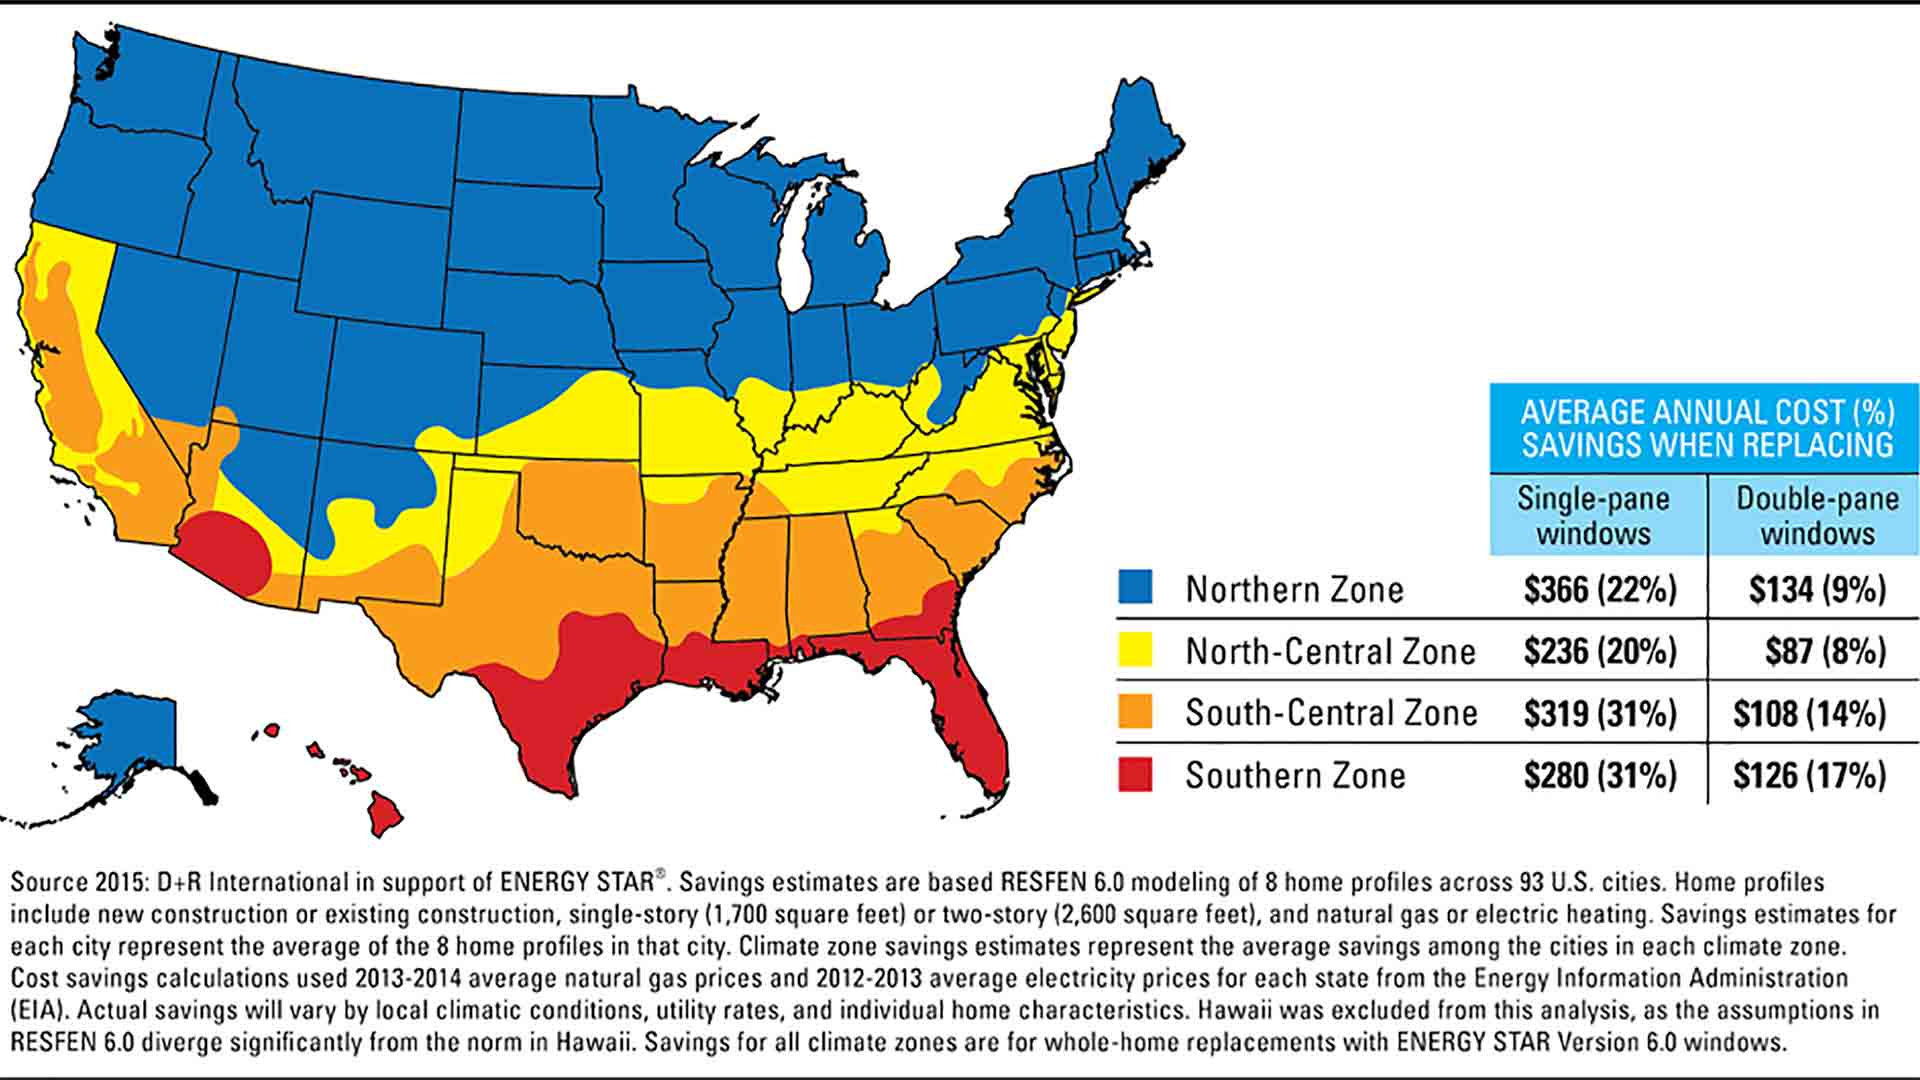 map of the US showing annual energy savings with replacement windows